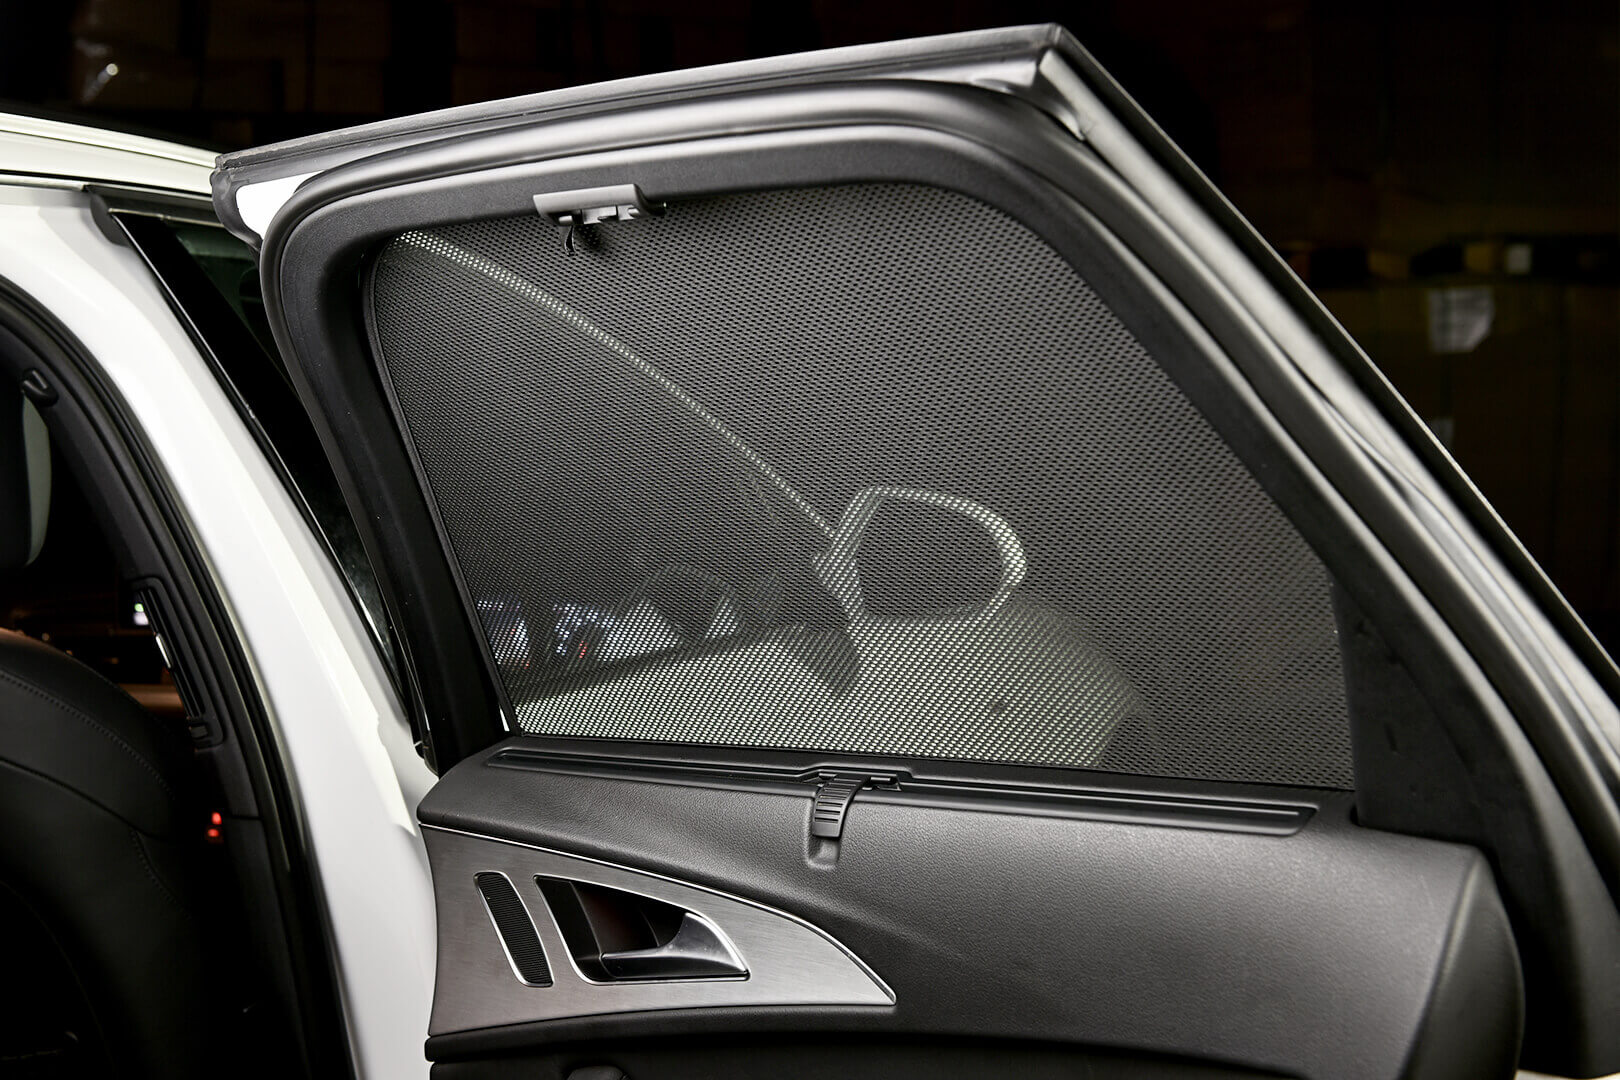 UV Privacy Car Shades Set of 6 Audi A6 Avant 11-18 - Vanstyle